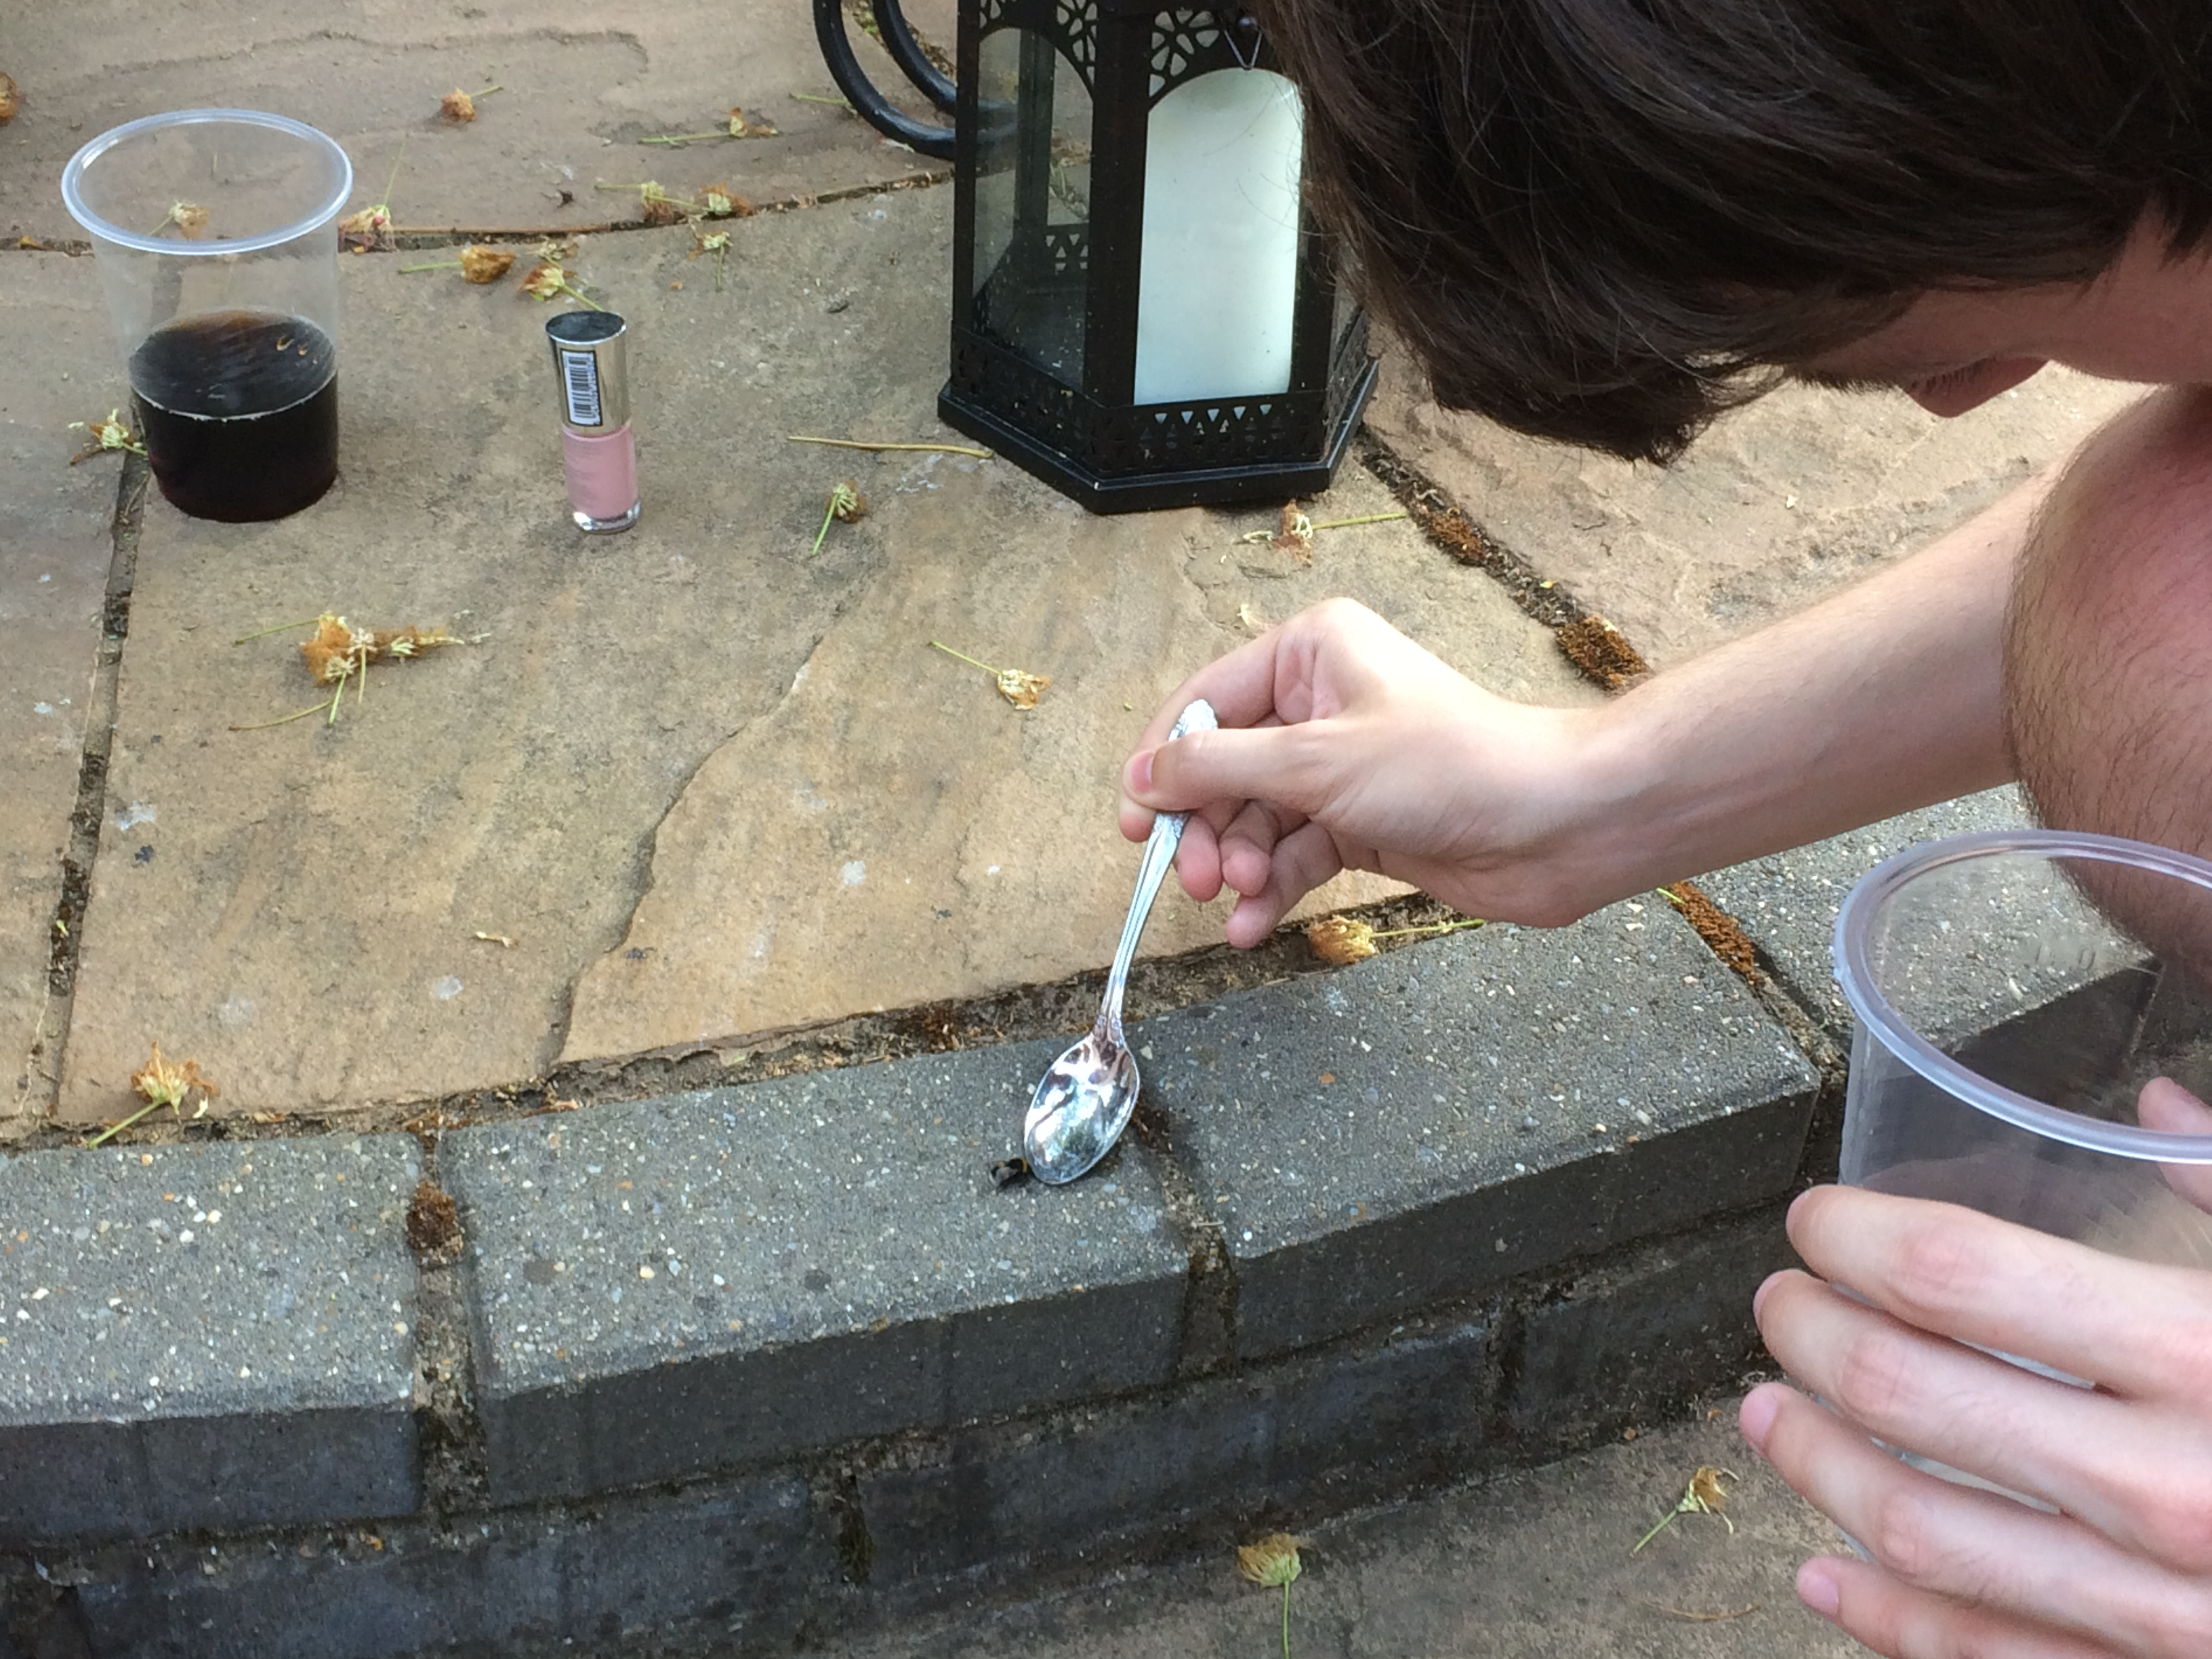 Kieran carefully feeding some sugary water to a bee from a spoon